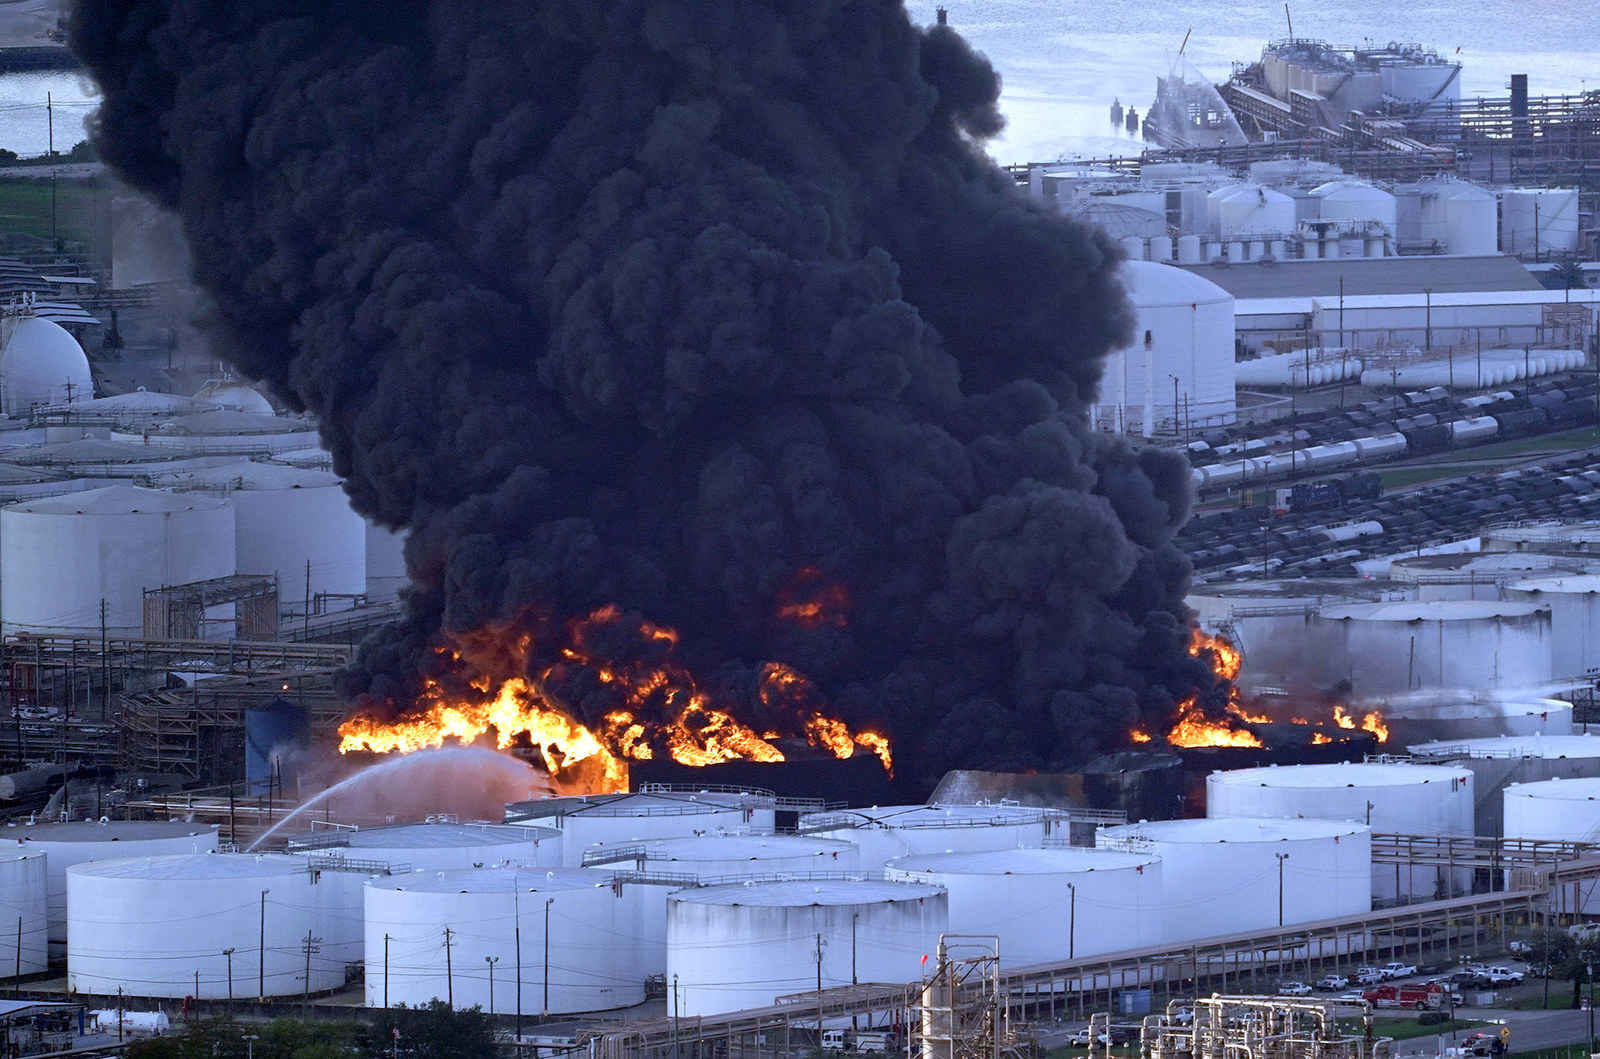 Firefighters battle a petrochemical fire at the Intercontinental Terminals Company in Deer Park, Texas, on March 18.